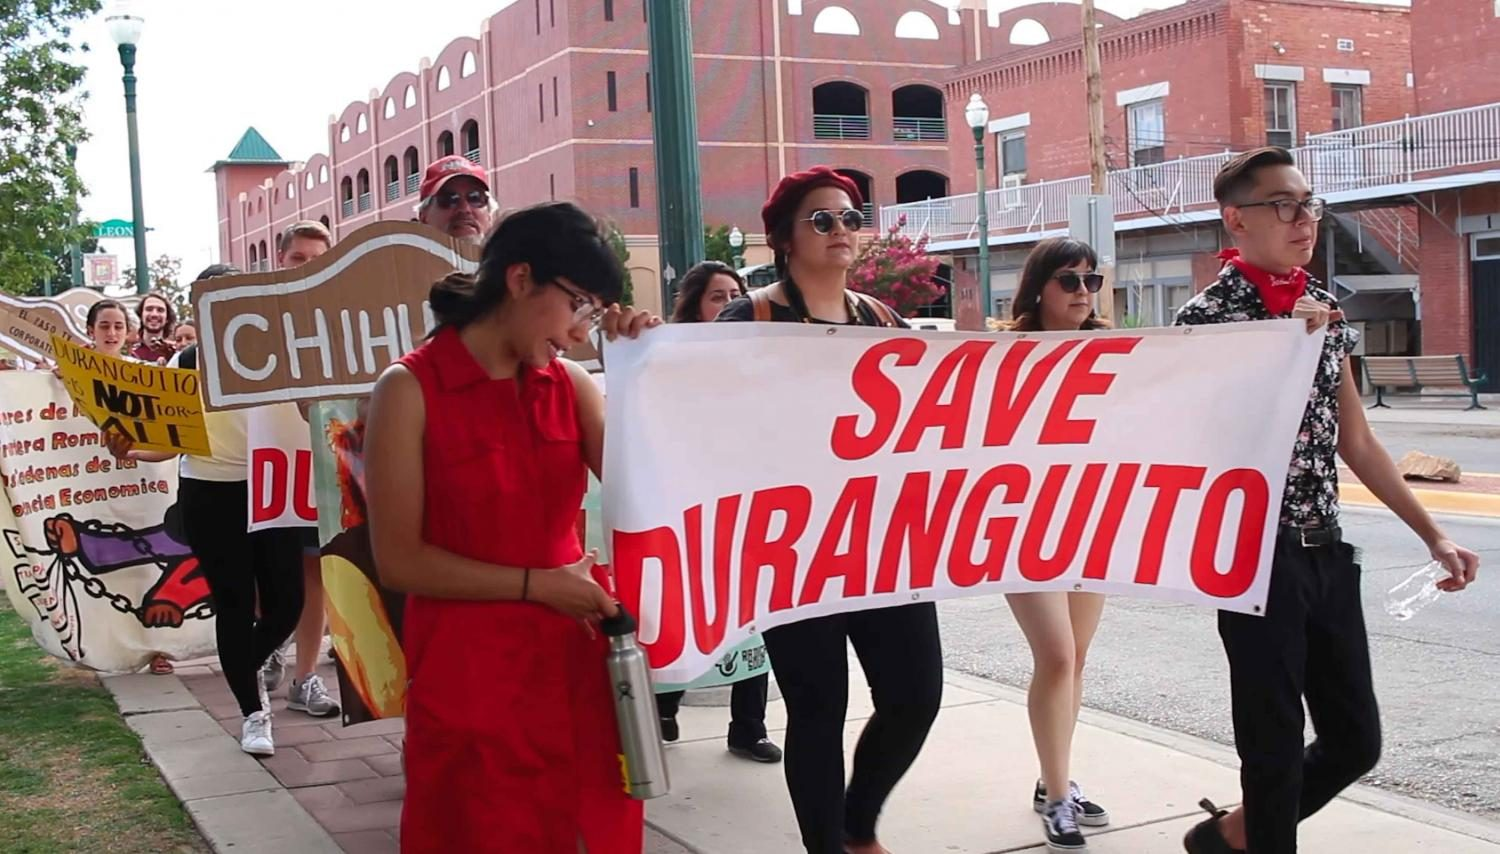 Duranguito+solidarity+march+advocates+for+preservation+of+community